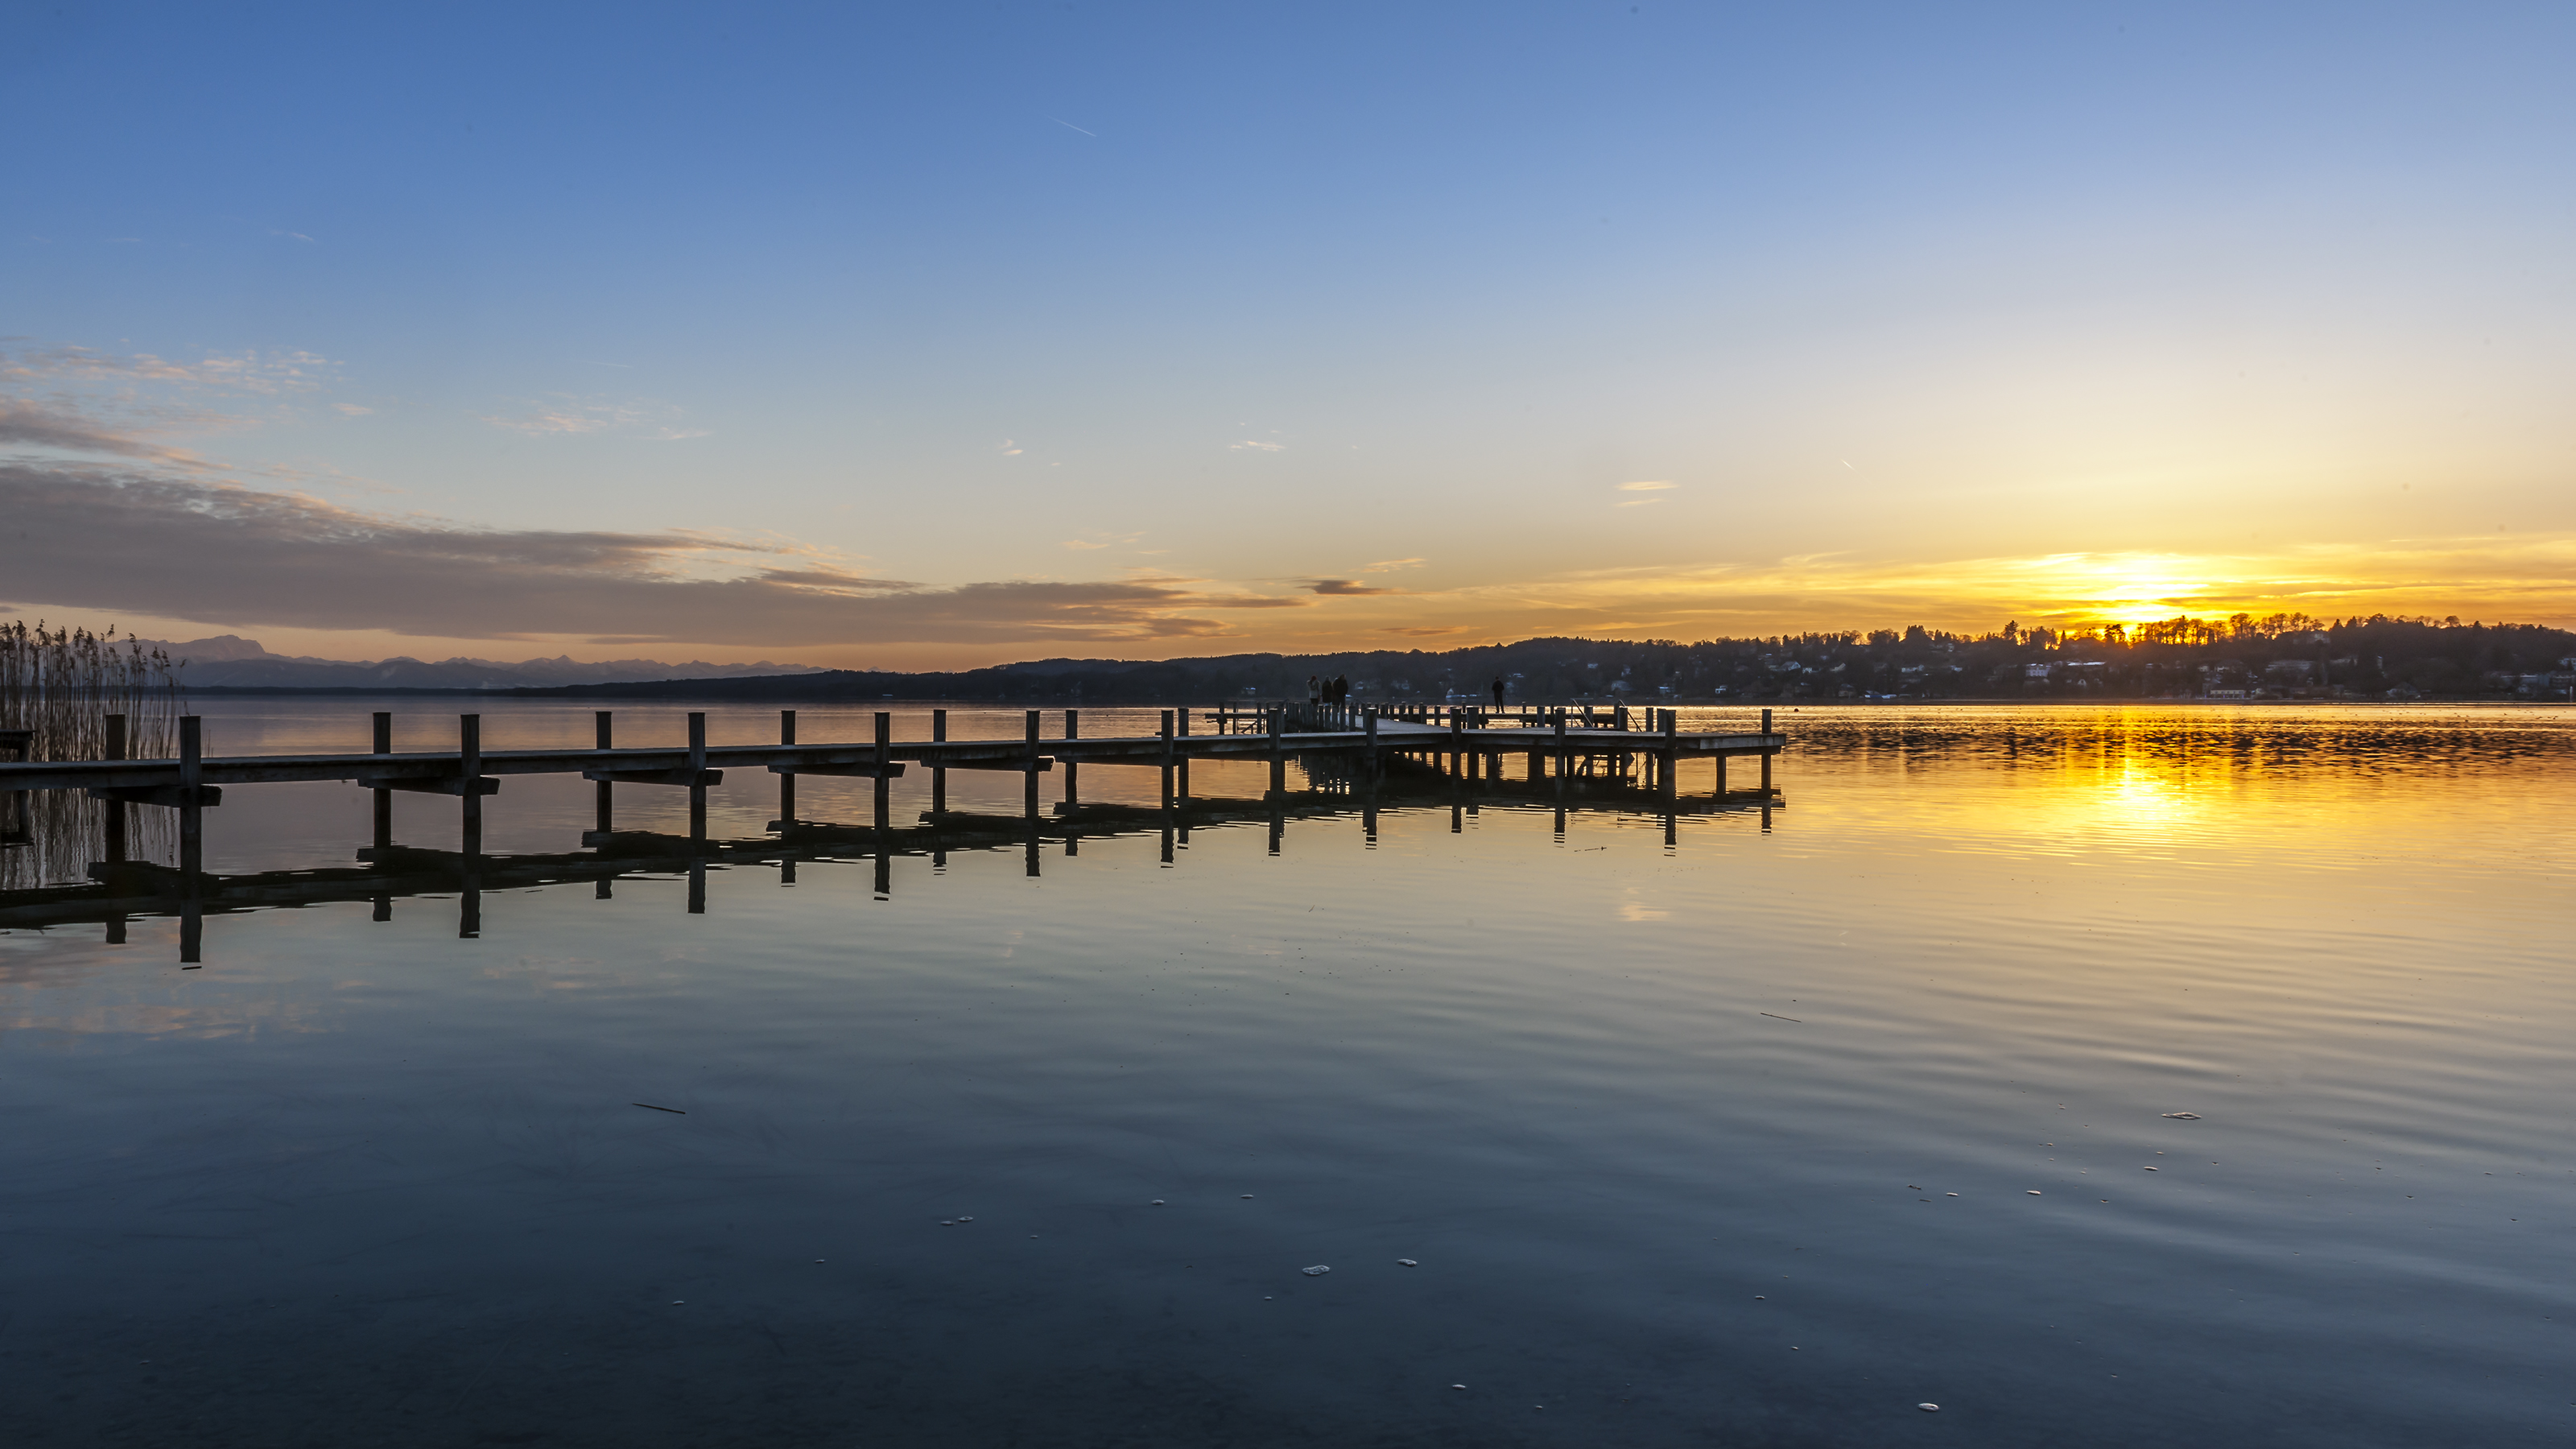 sonnenuntergang am starnberger see wgm picture. Black Bedroom Furniture Sets. Home Design Ideas